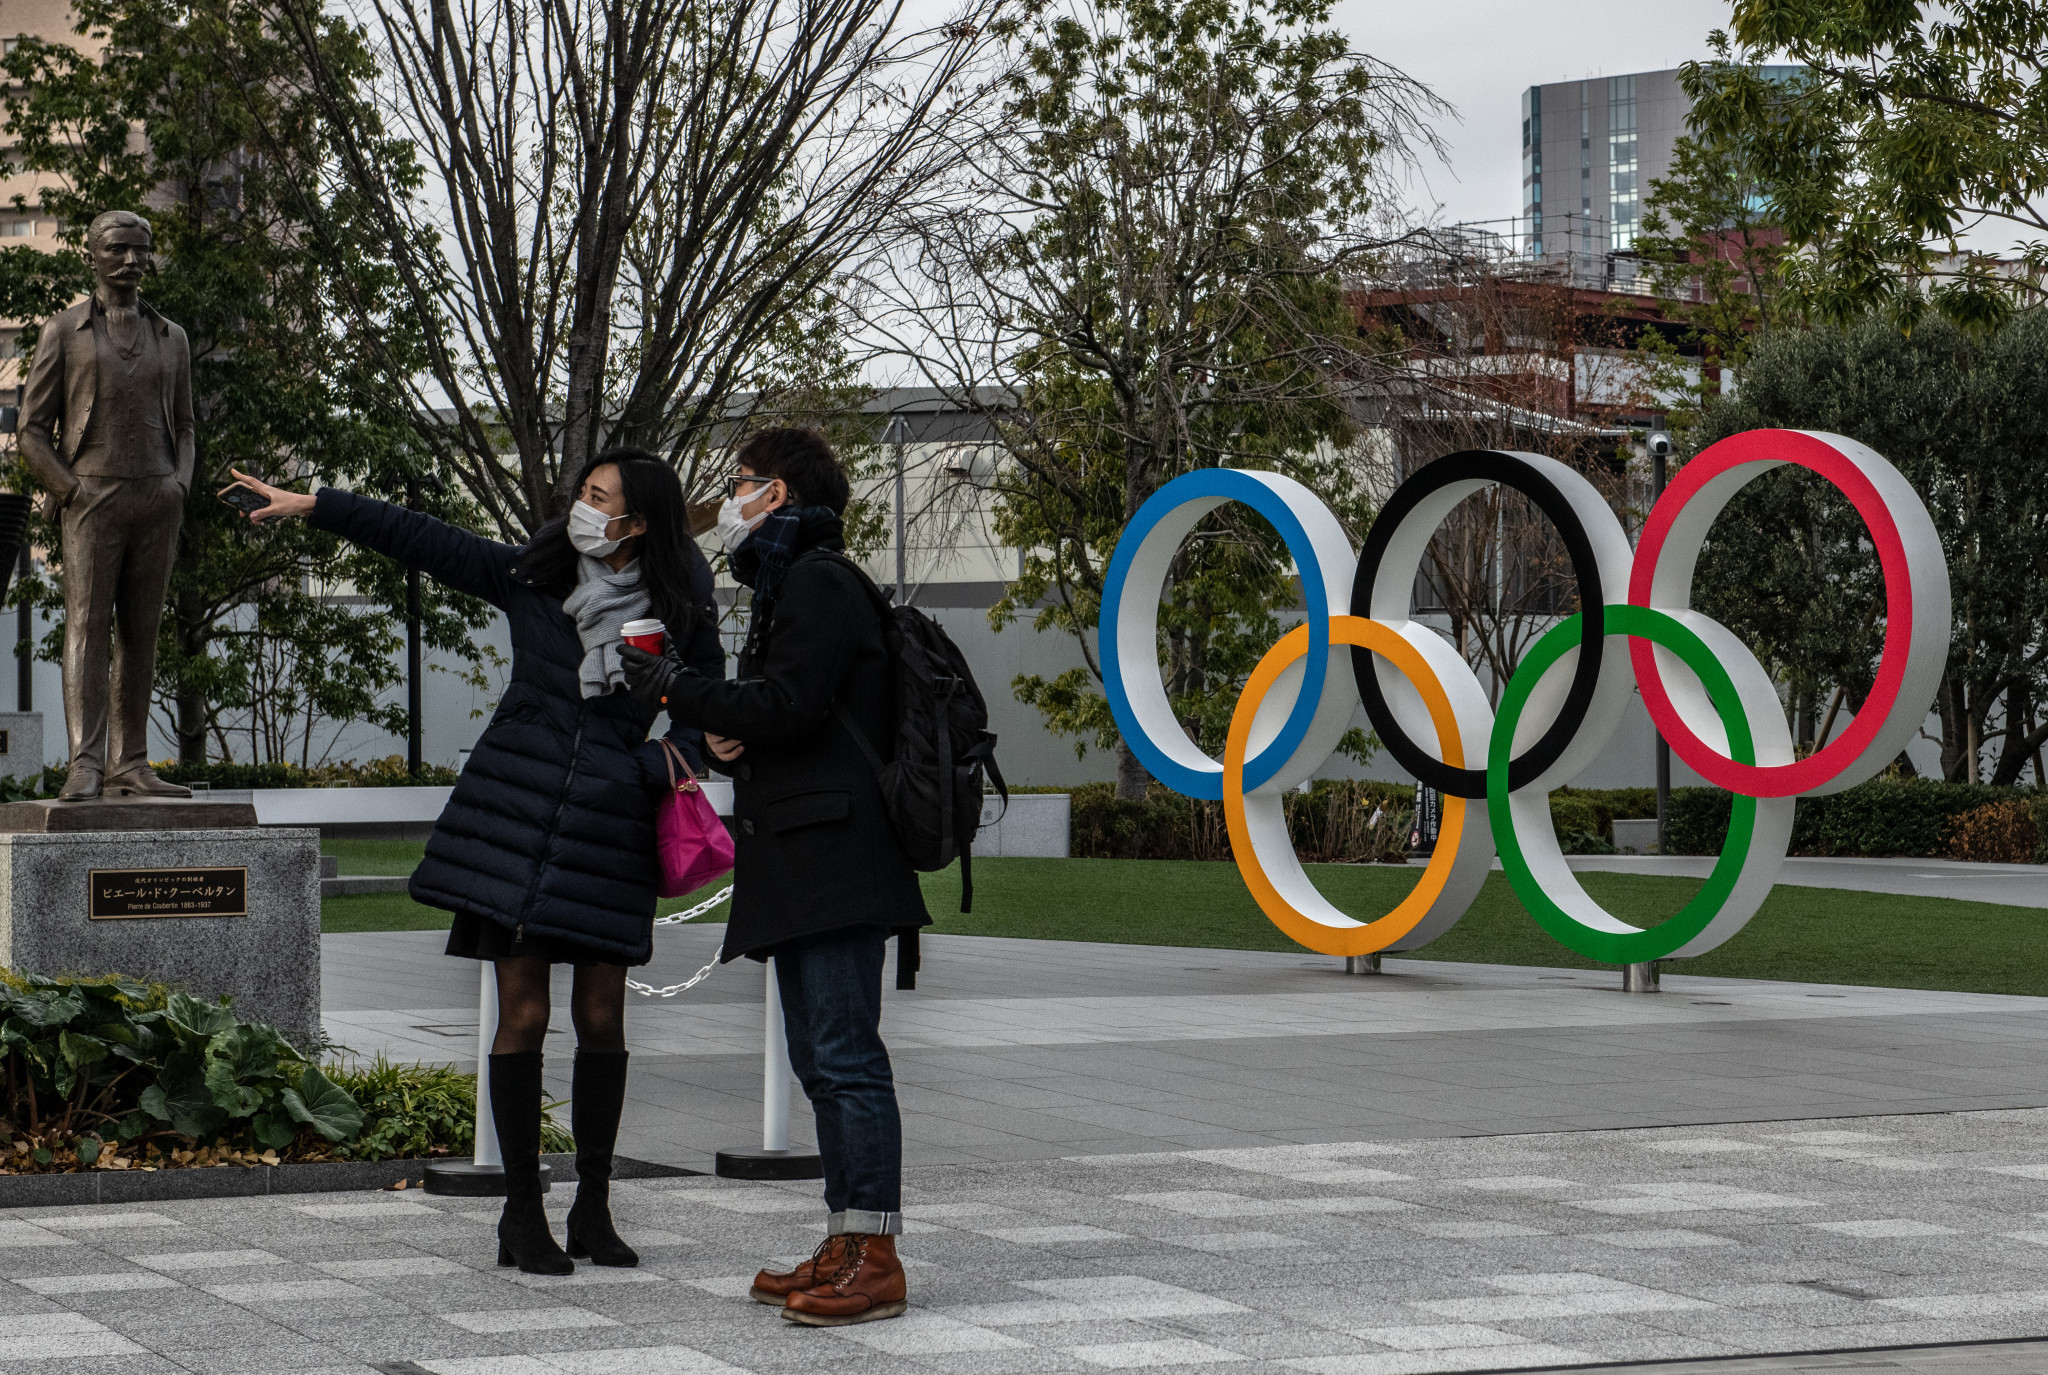 The staging of the Olympics and Paralympic Games this year is uncertain due to the rising number of COVID-19 cases in Japan ©Getty Images